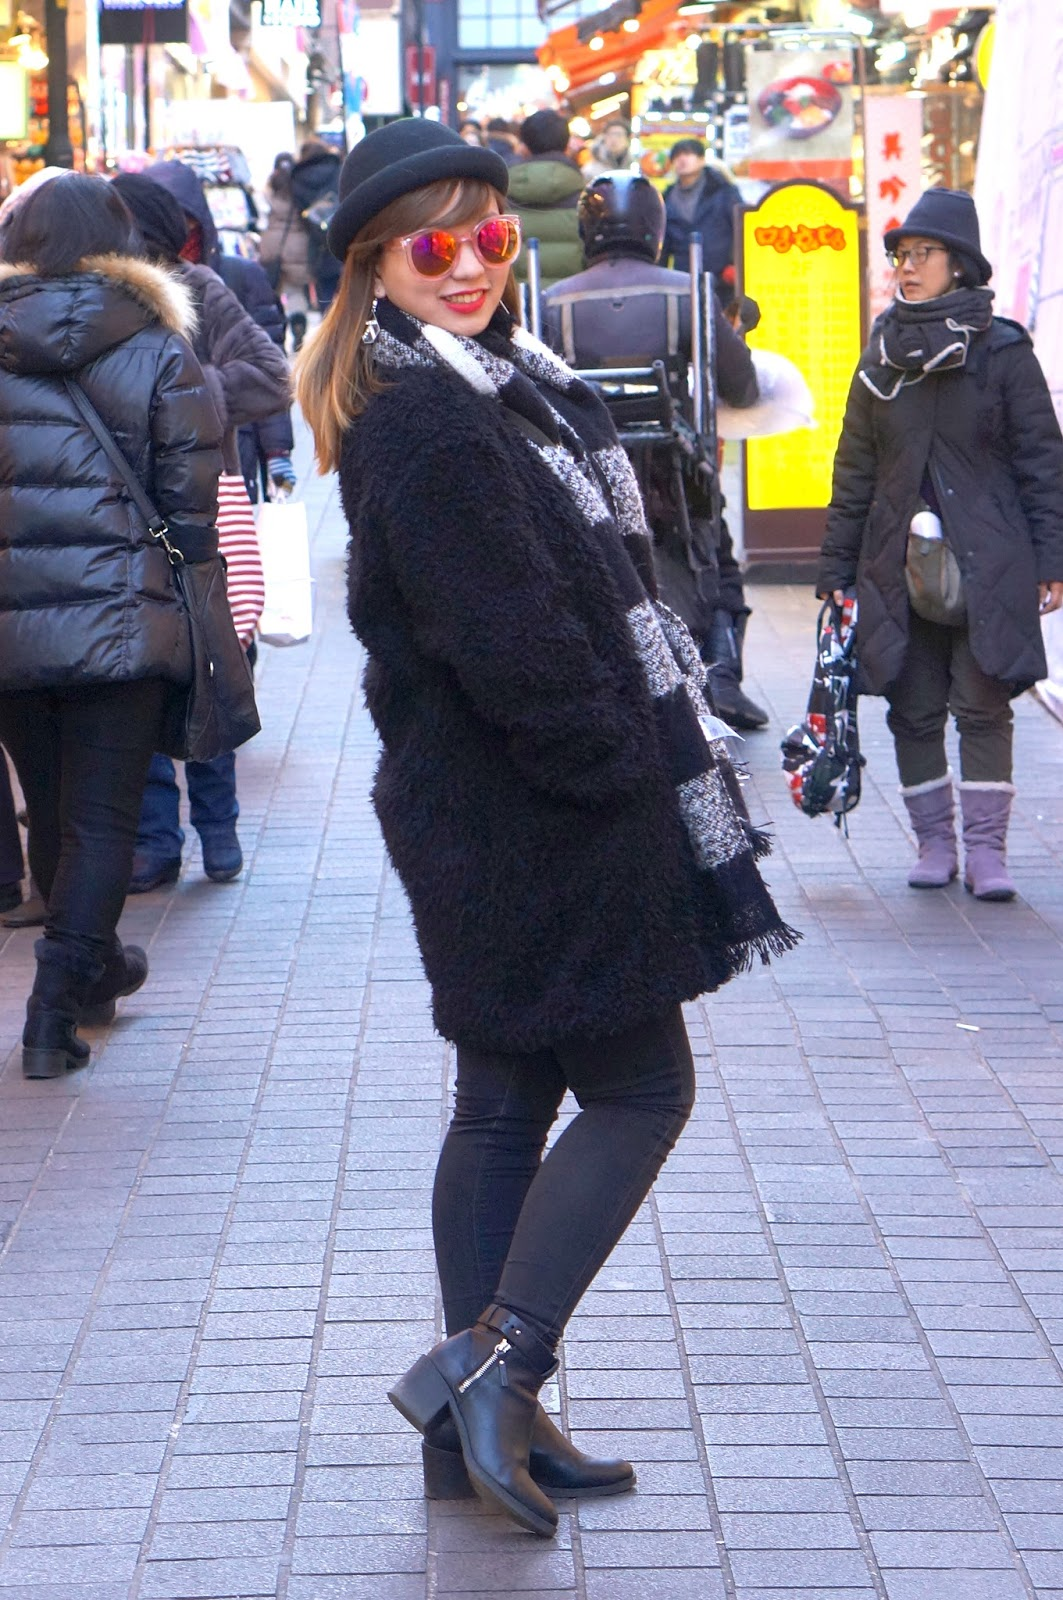 Walk With Cham What To Wear Amp Bring During Winter